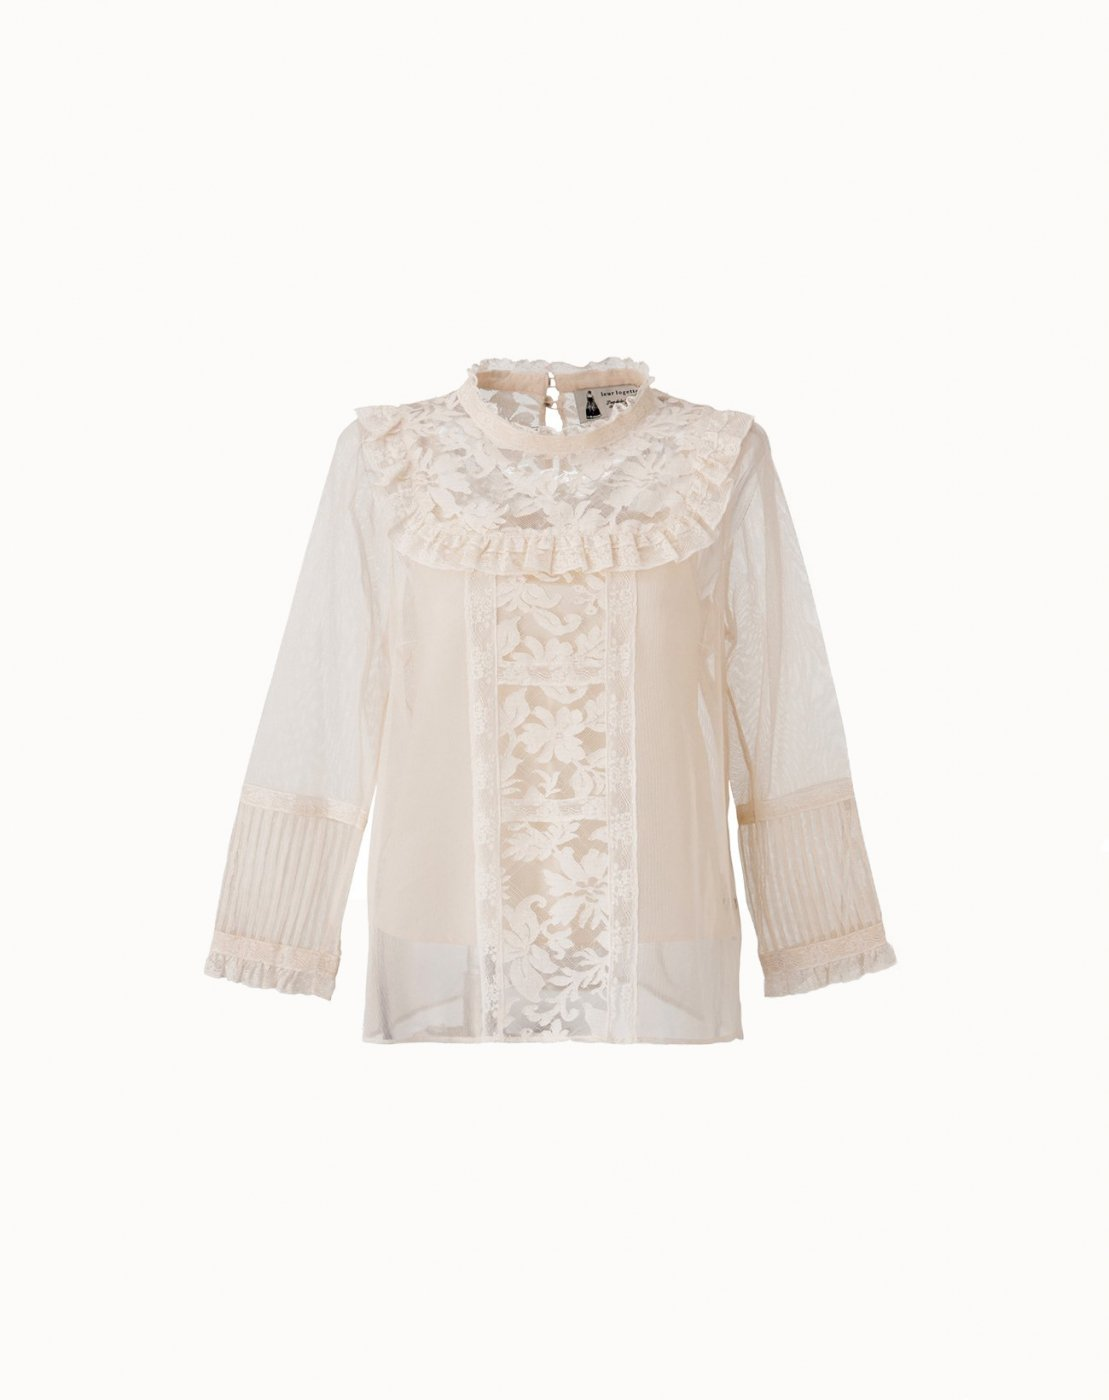 leur logette - 再入荷−Cotton Tulle Lace Blouse - Cream